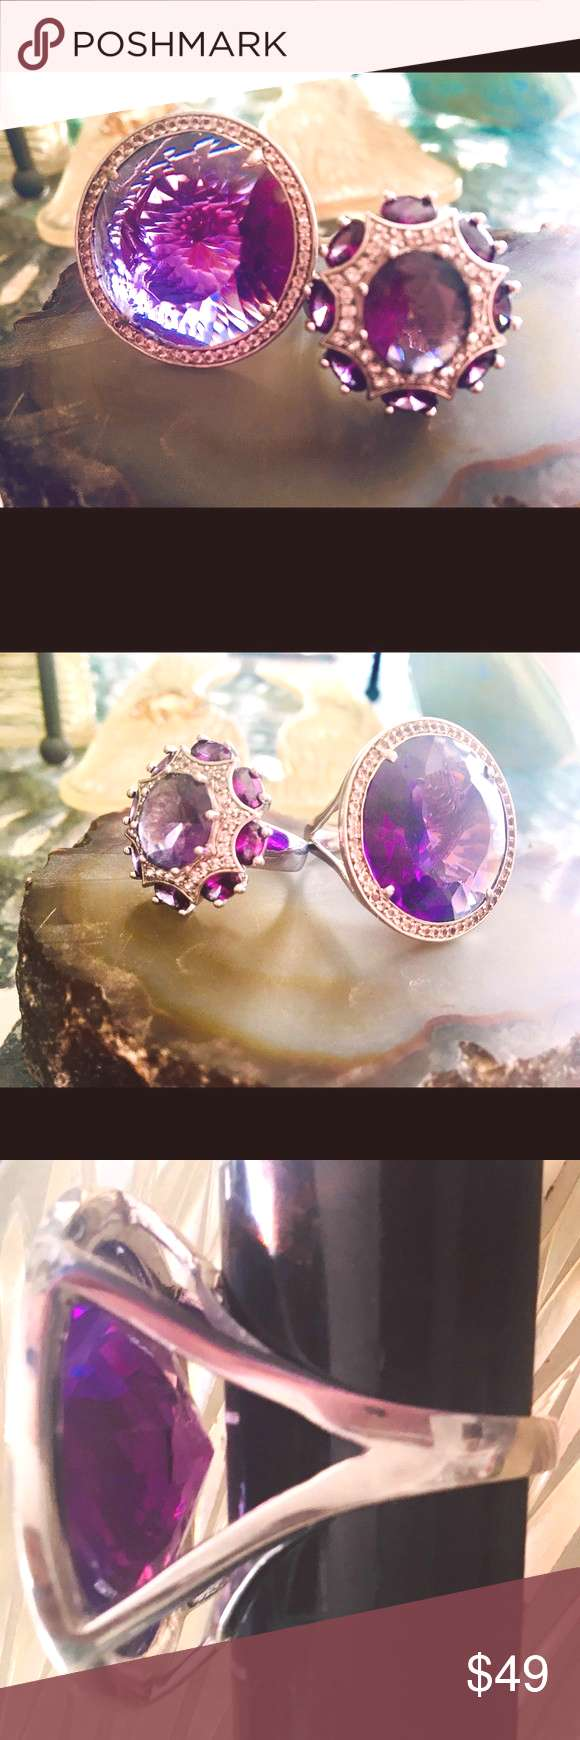 RegalRoyal Purple Amethyst Crystal Cocktail Rings Gorgeous Pair of Two Size 10 Royal Purple Synthet